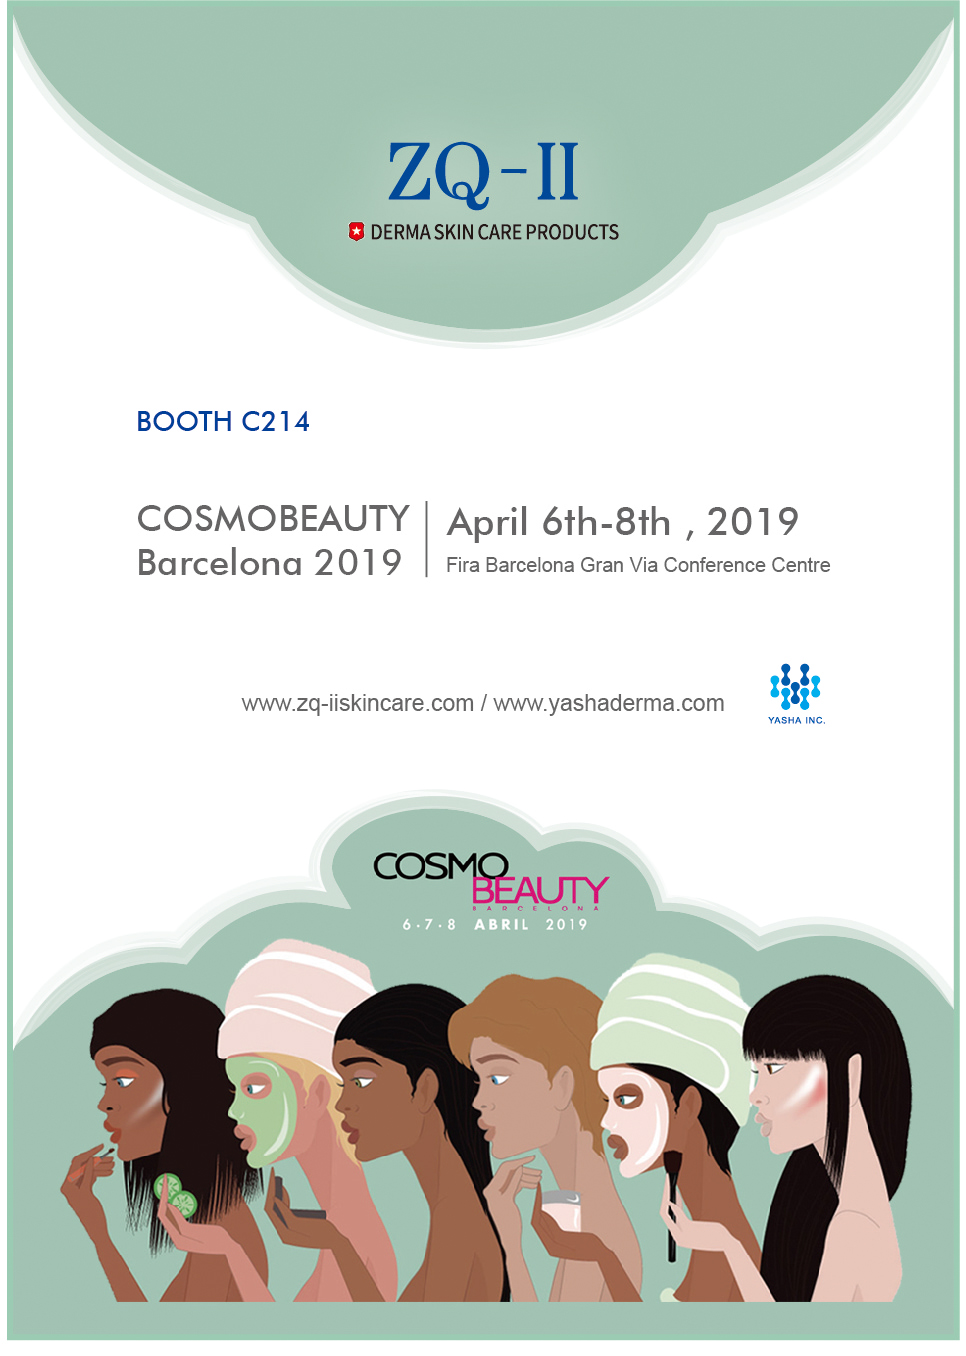 April 6th -8th, Cosmobeauty Bercelona 2019